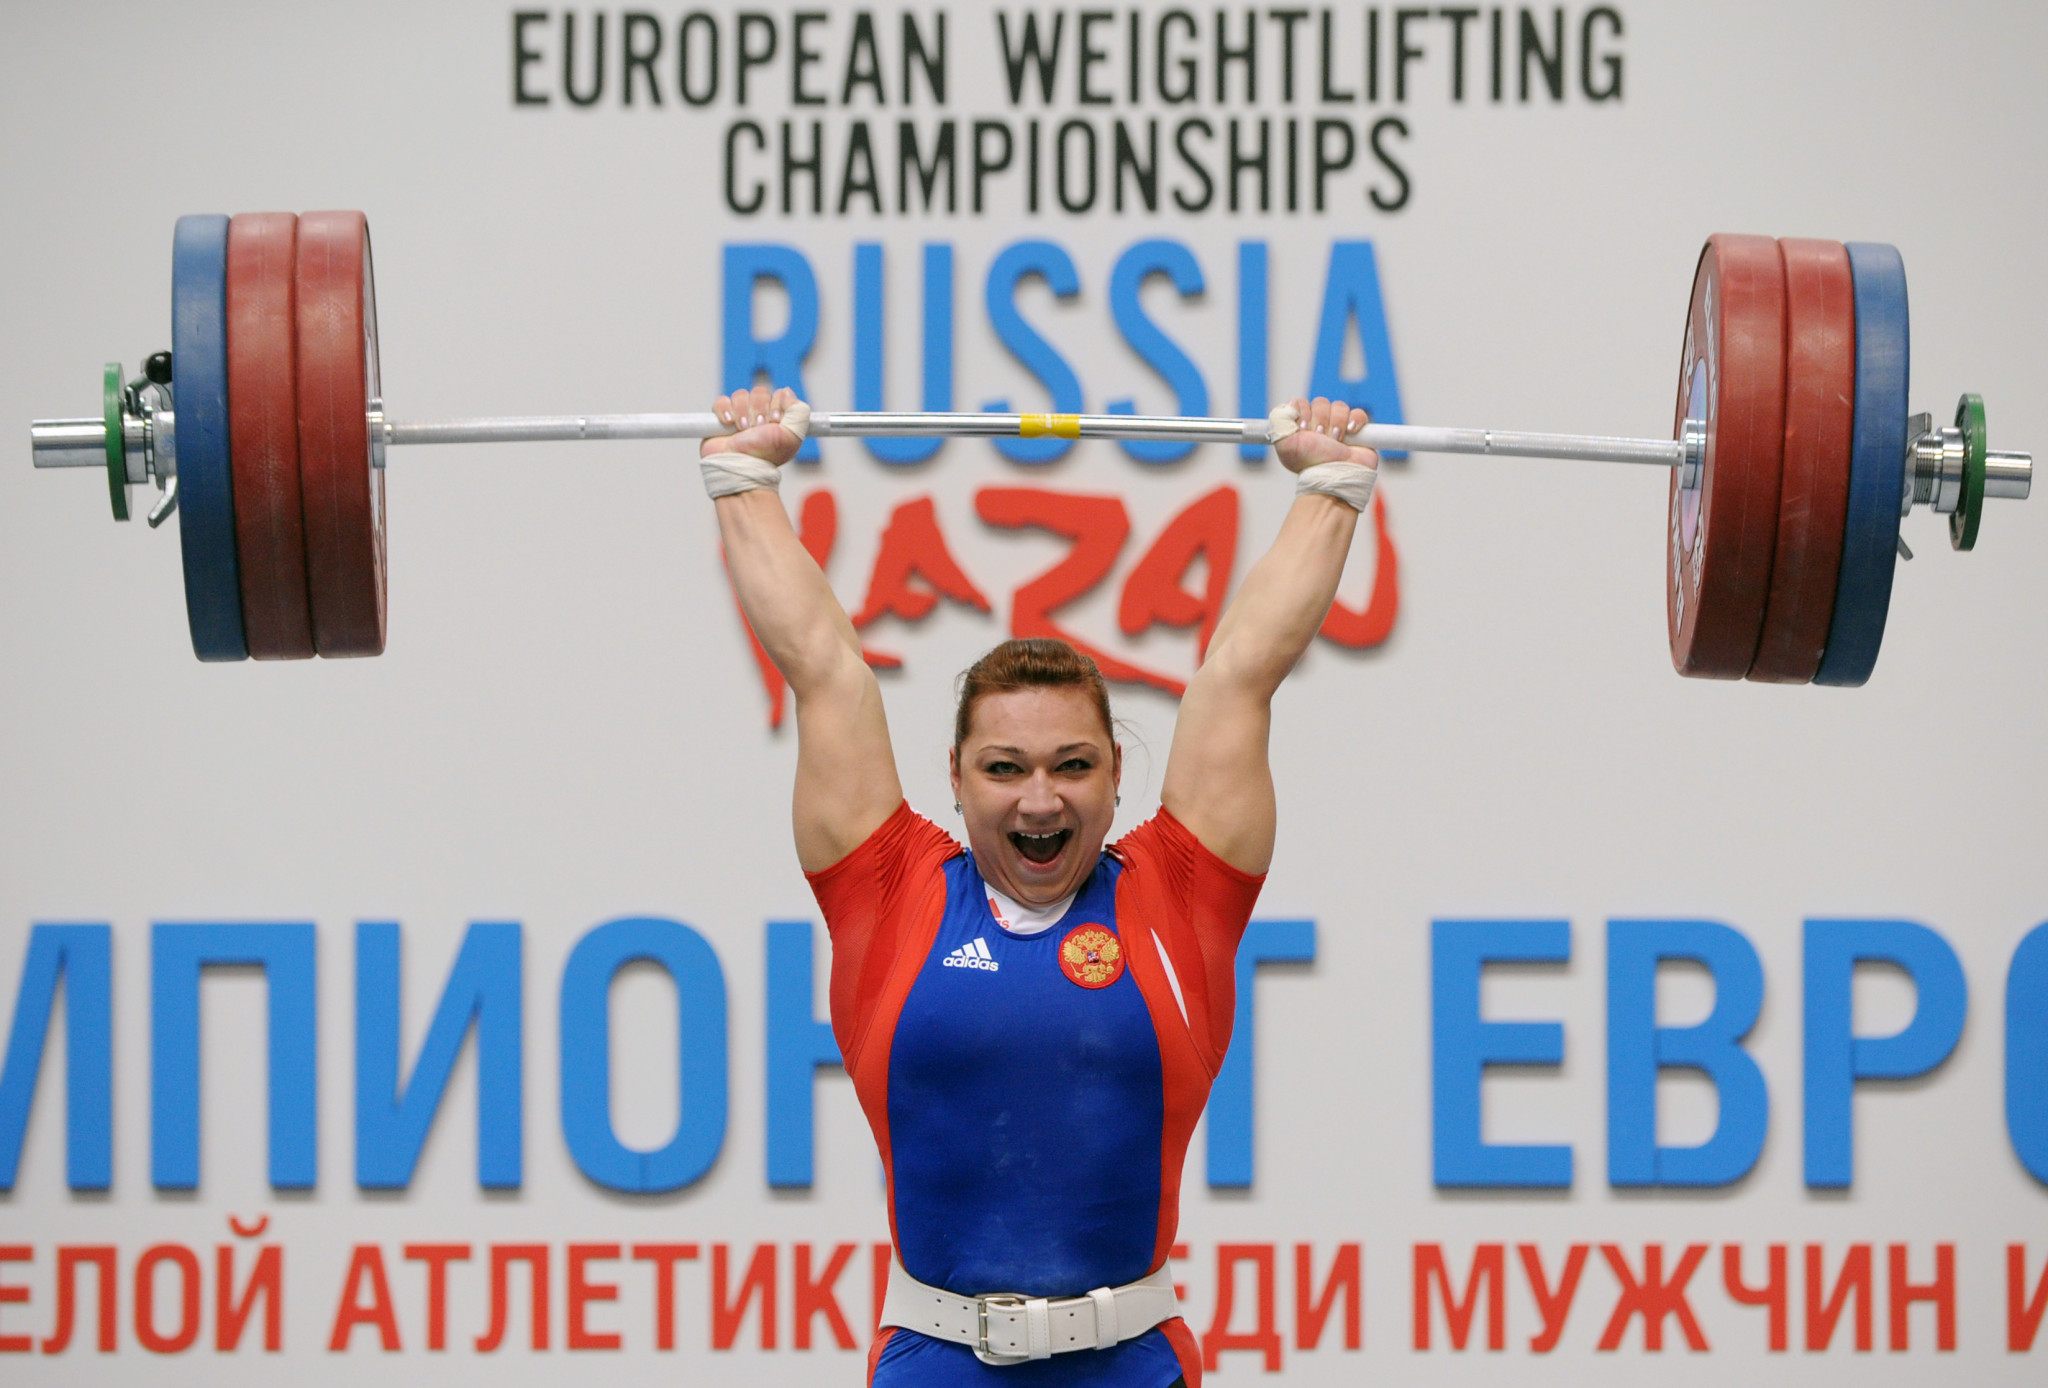 Nadezhda Evstiukhina was handed a two-year anti-doping ban, but two other Russia weightlifters received four-year sanctions ©Getty Images